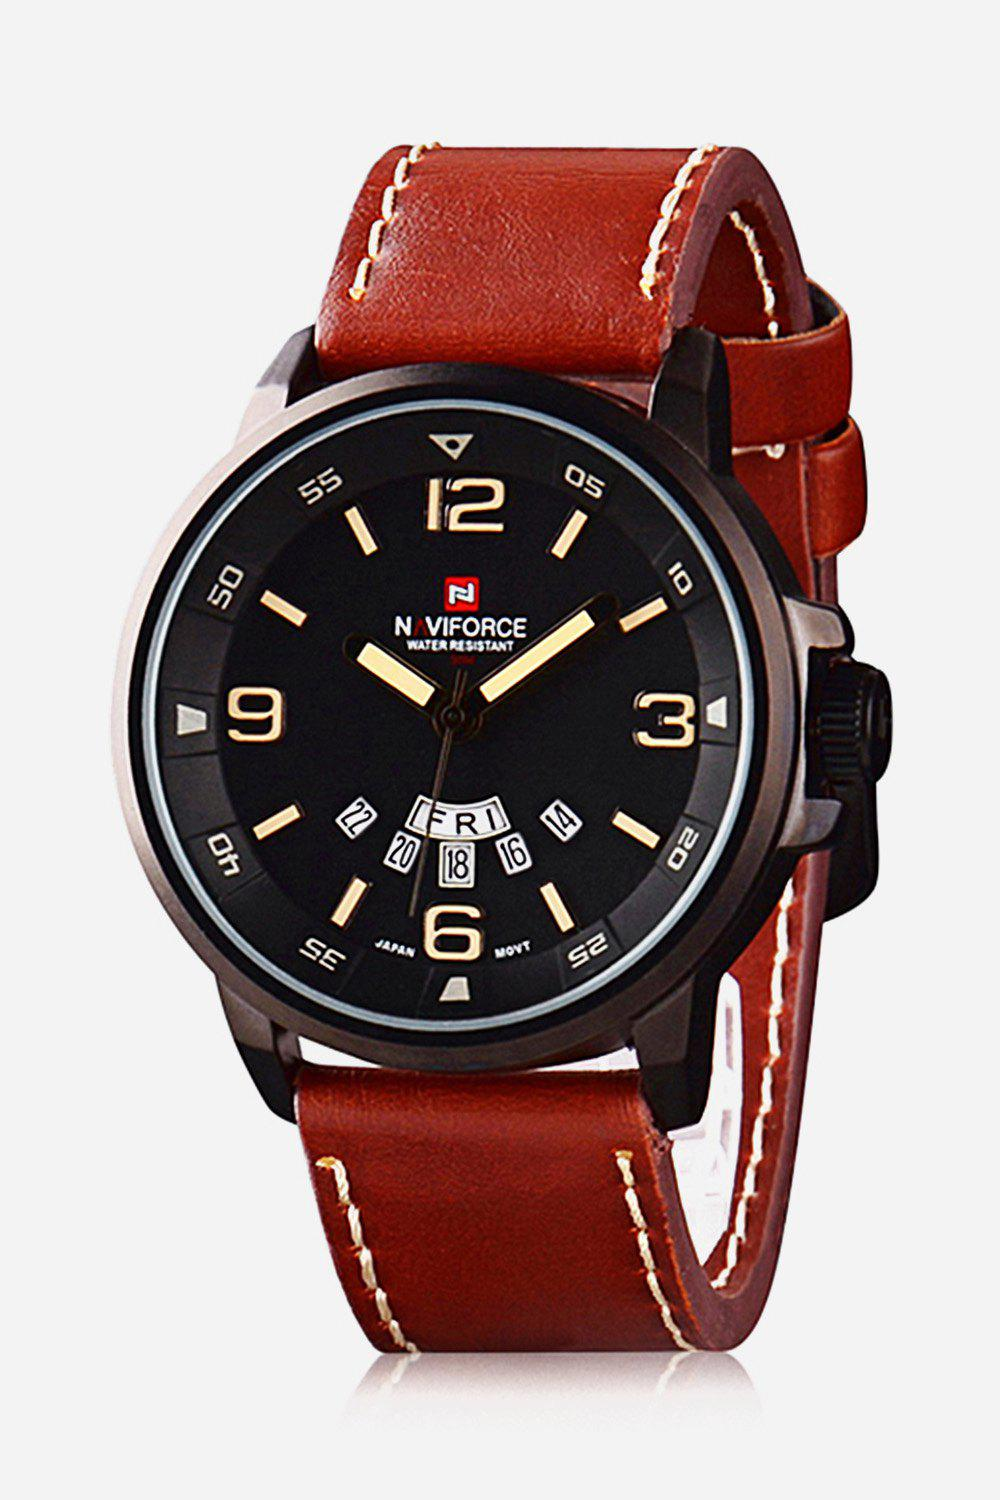 Naviforce 9028 Military Leather Band Quartz Analog Watch Japan Movt Day Date Water Resistant for Men - BROWN